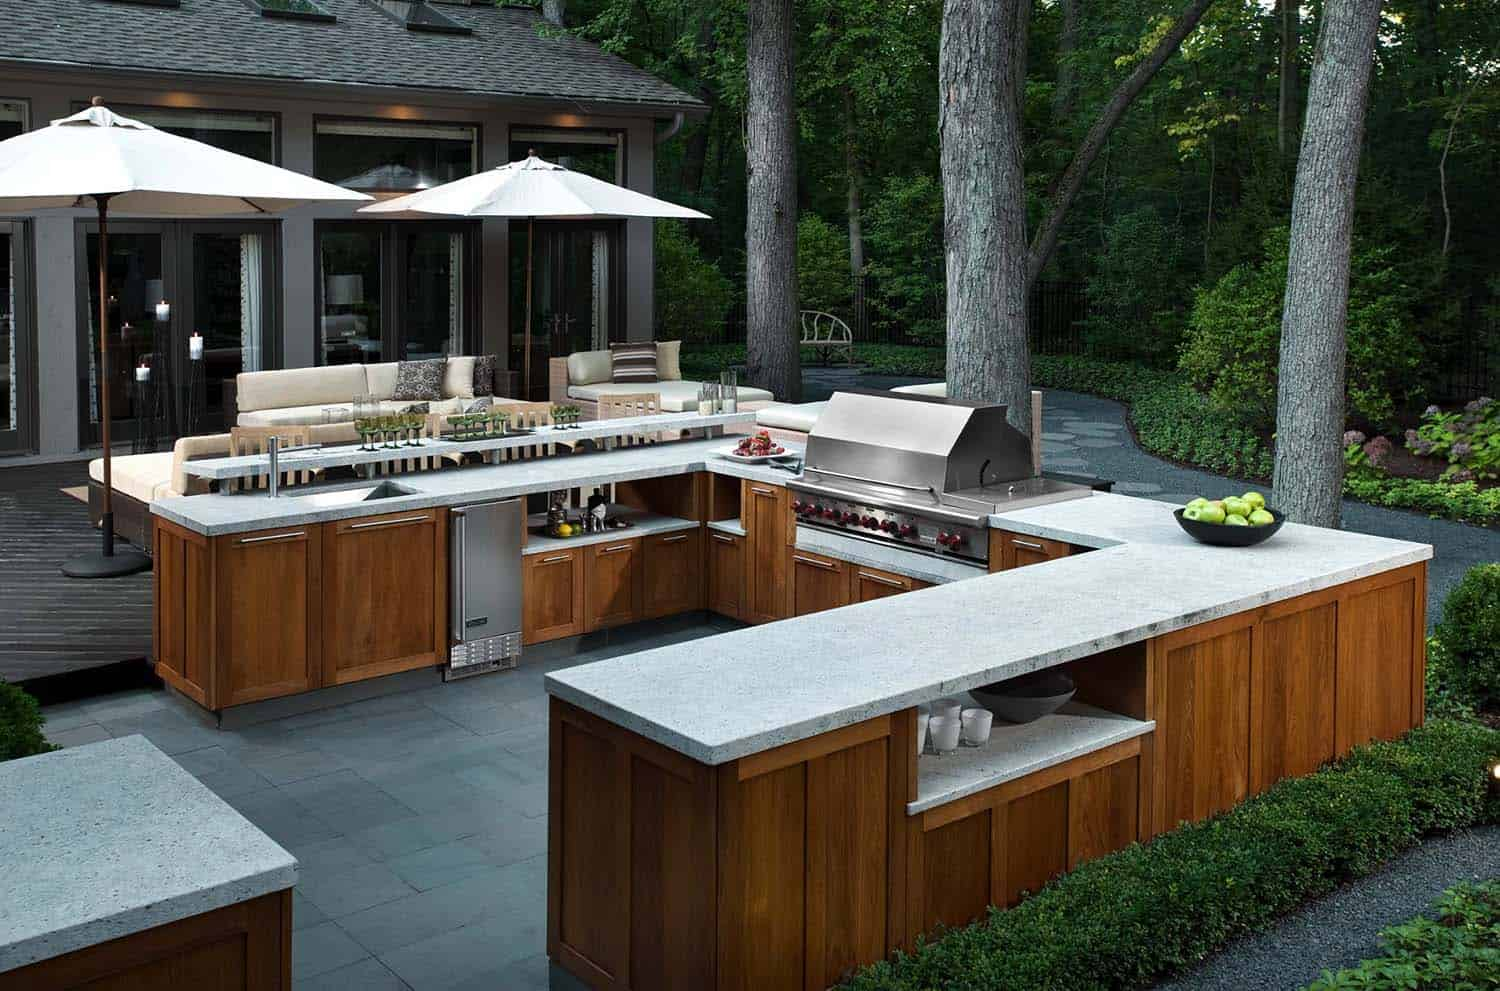 Outdoor kitchen cheap outdoor kitchen ideas hgtv cheap outdoor kitchen ideas for Cheap outdoor kitchen designs